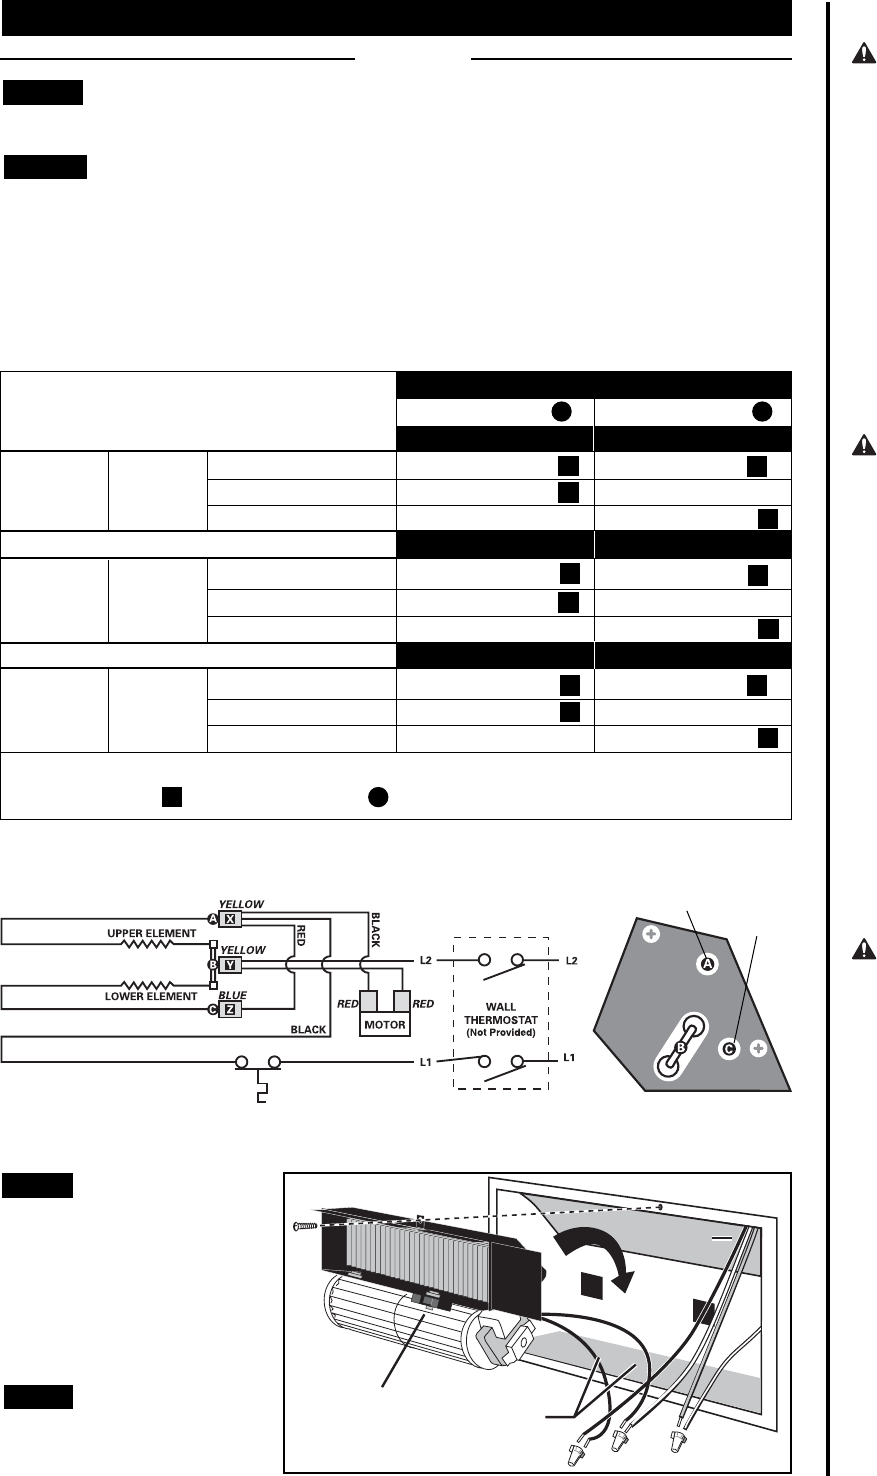 d35c4a25 020a 43b7 ba4e 55e47ef57aef bg3 page 3 of cadet electric heater rm208 user guide manualsonline com cadet wall heater wiring diagram at n-0.co